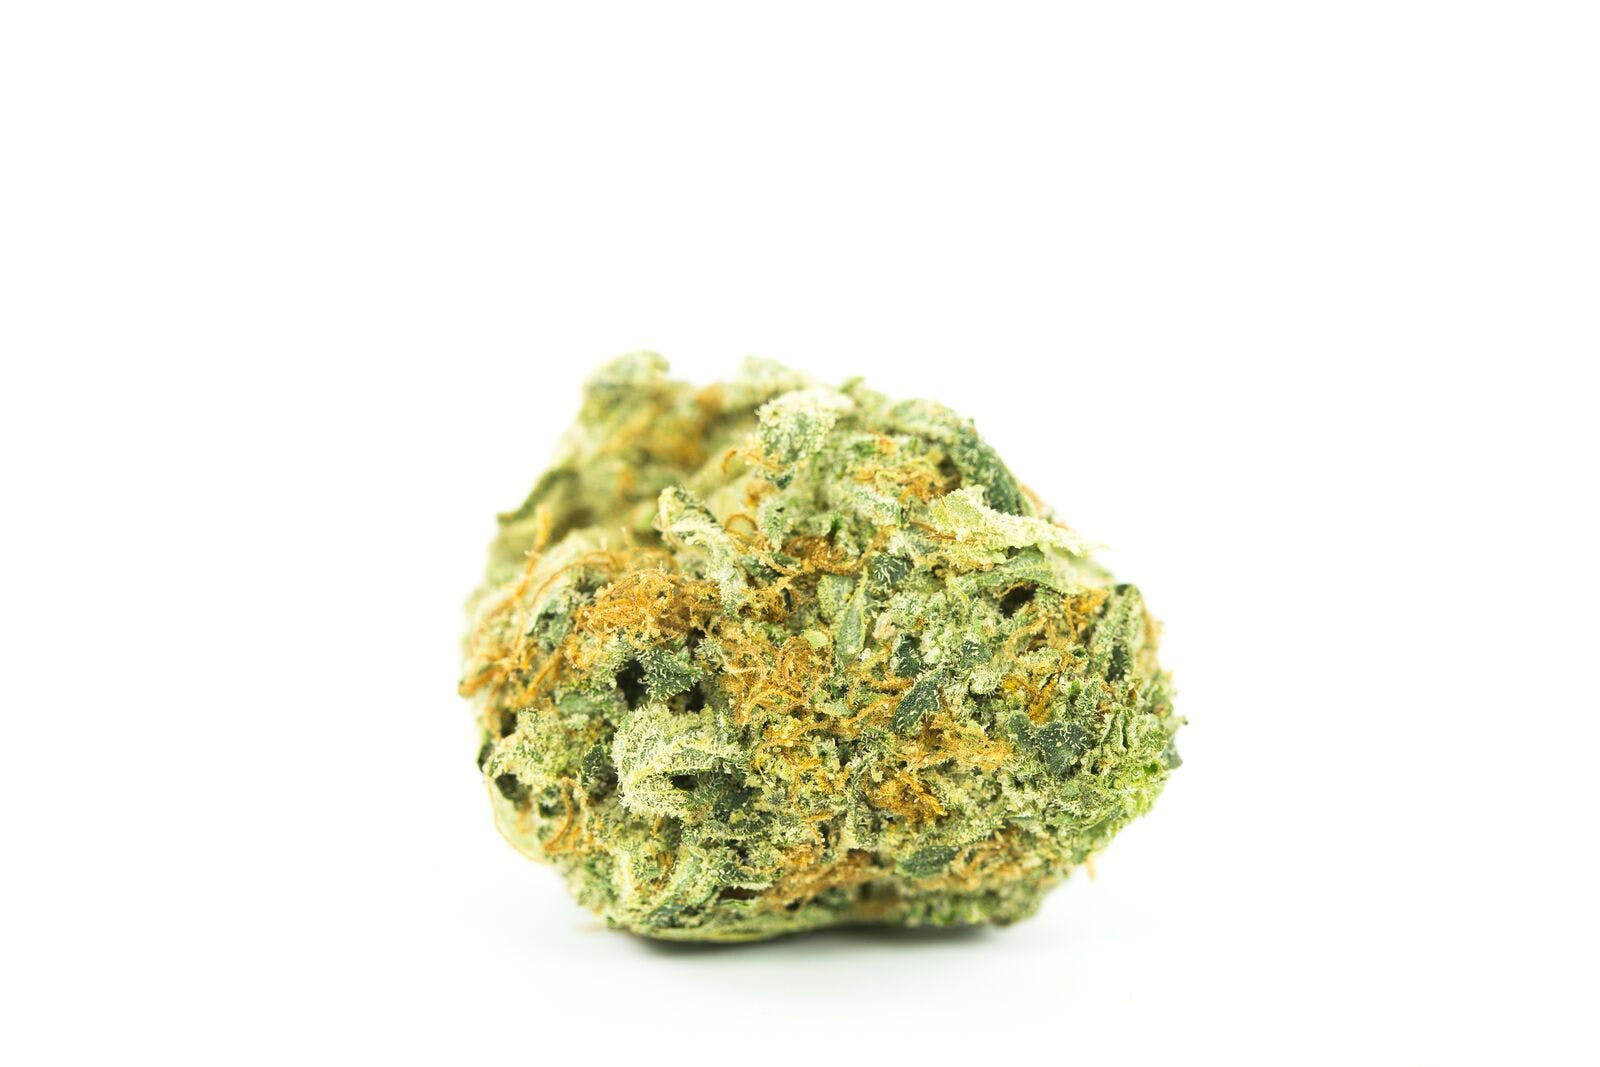 Golden Ticket Weed; Golden Ticket Cannabis Strain; Golden Ticket Hybrid Marijuana Strain